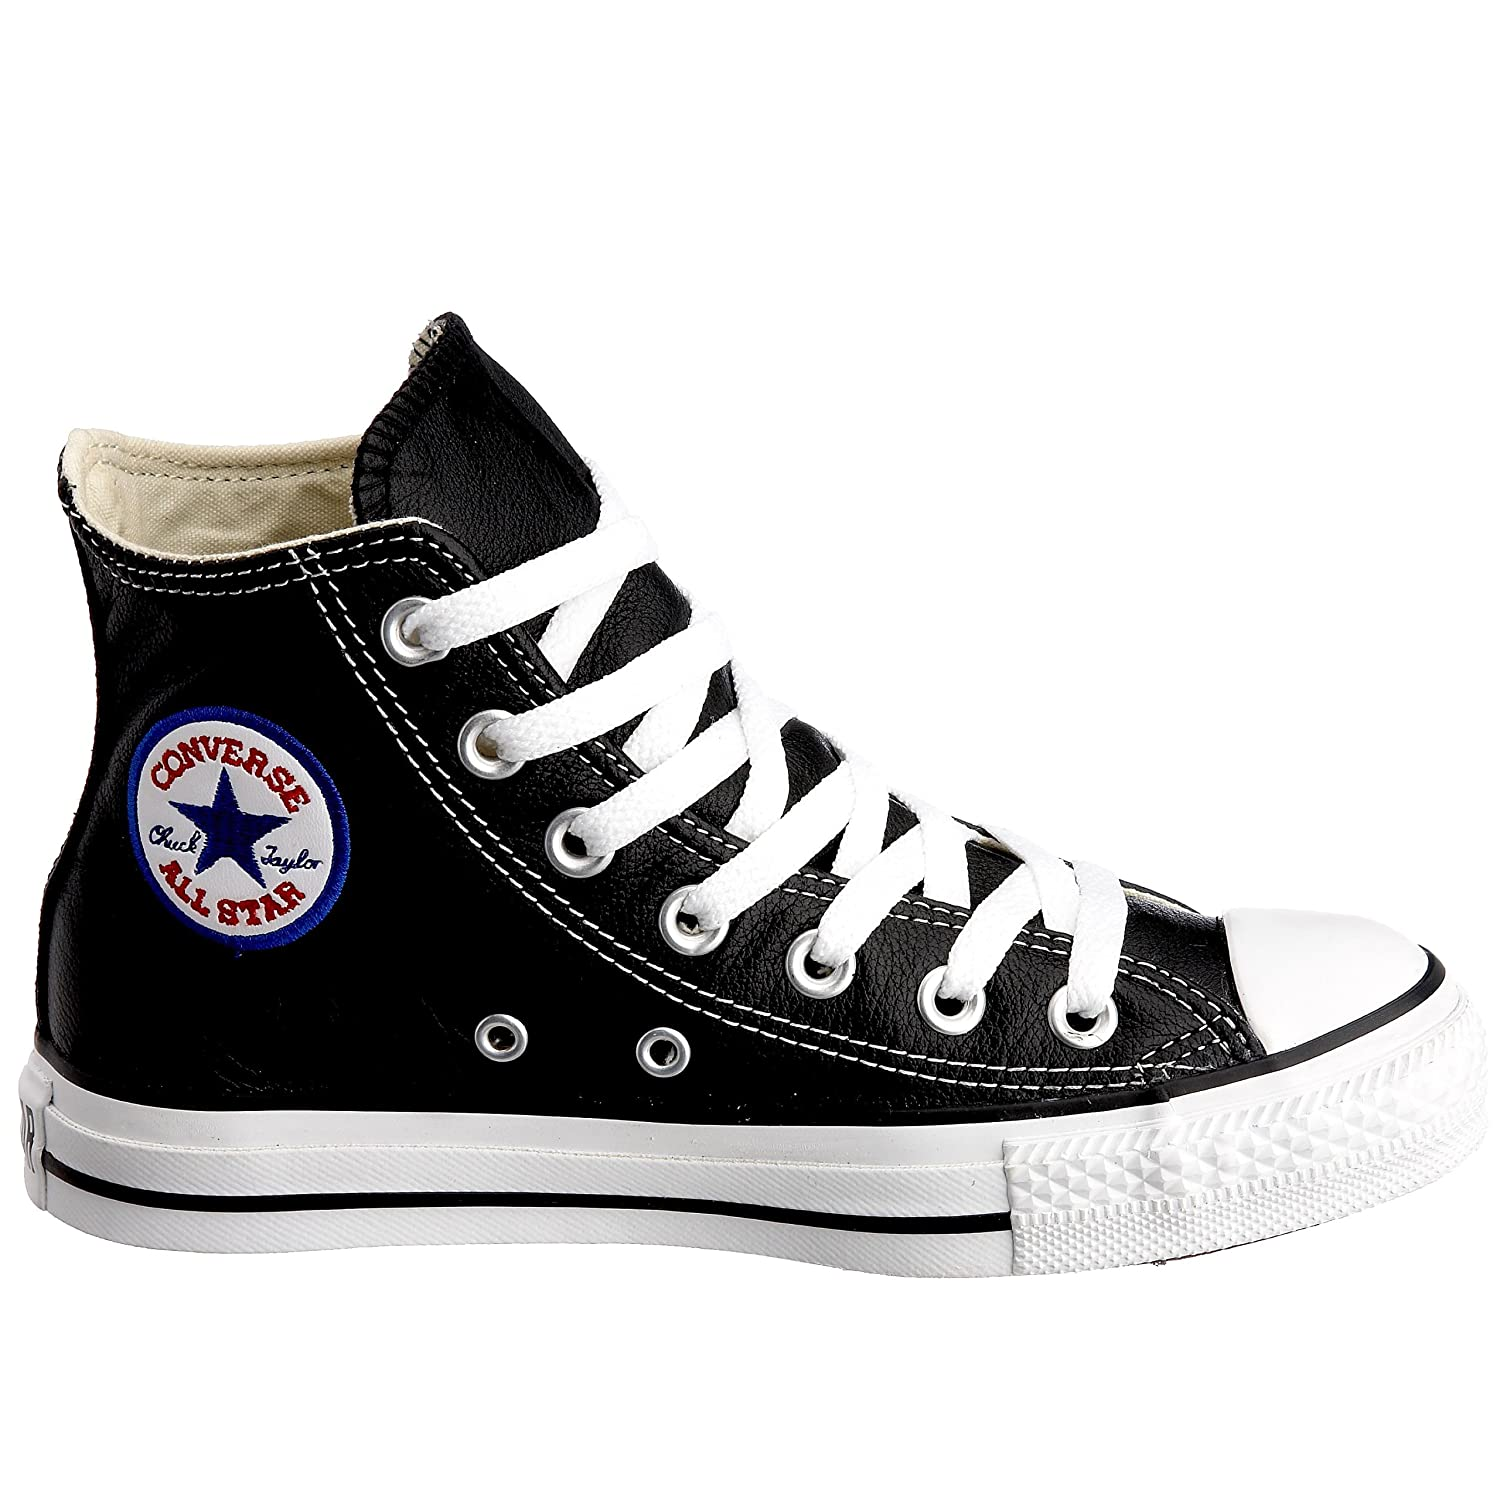 converse noir fouree